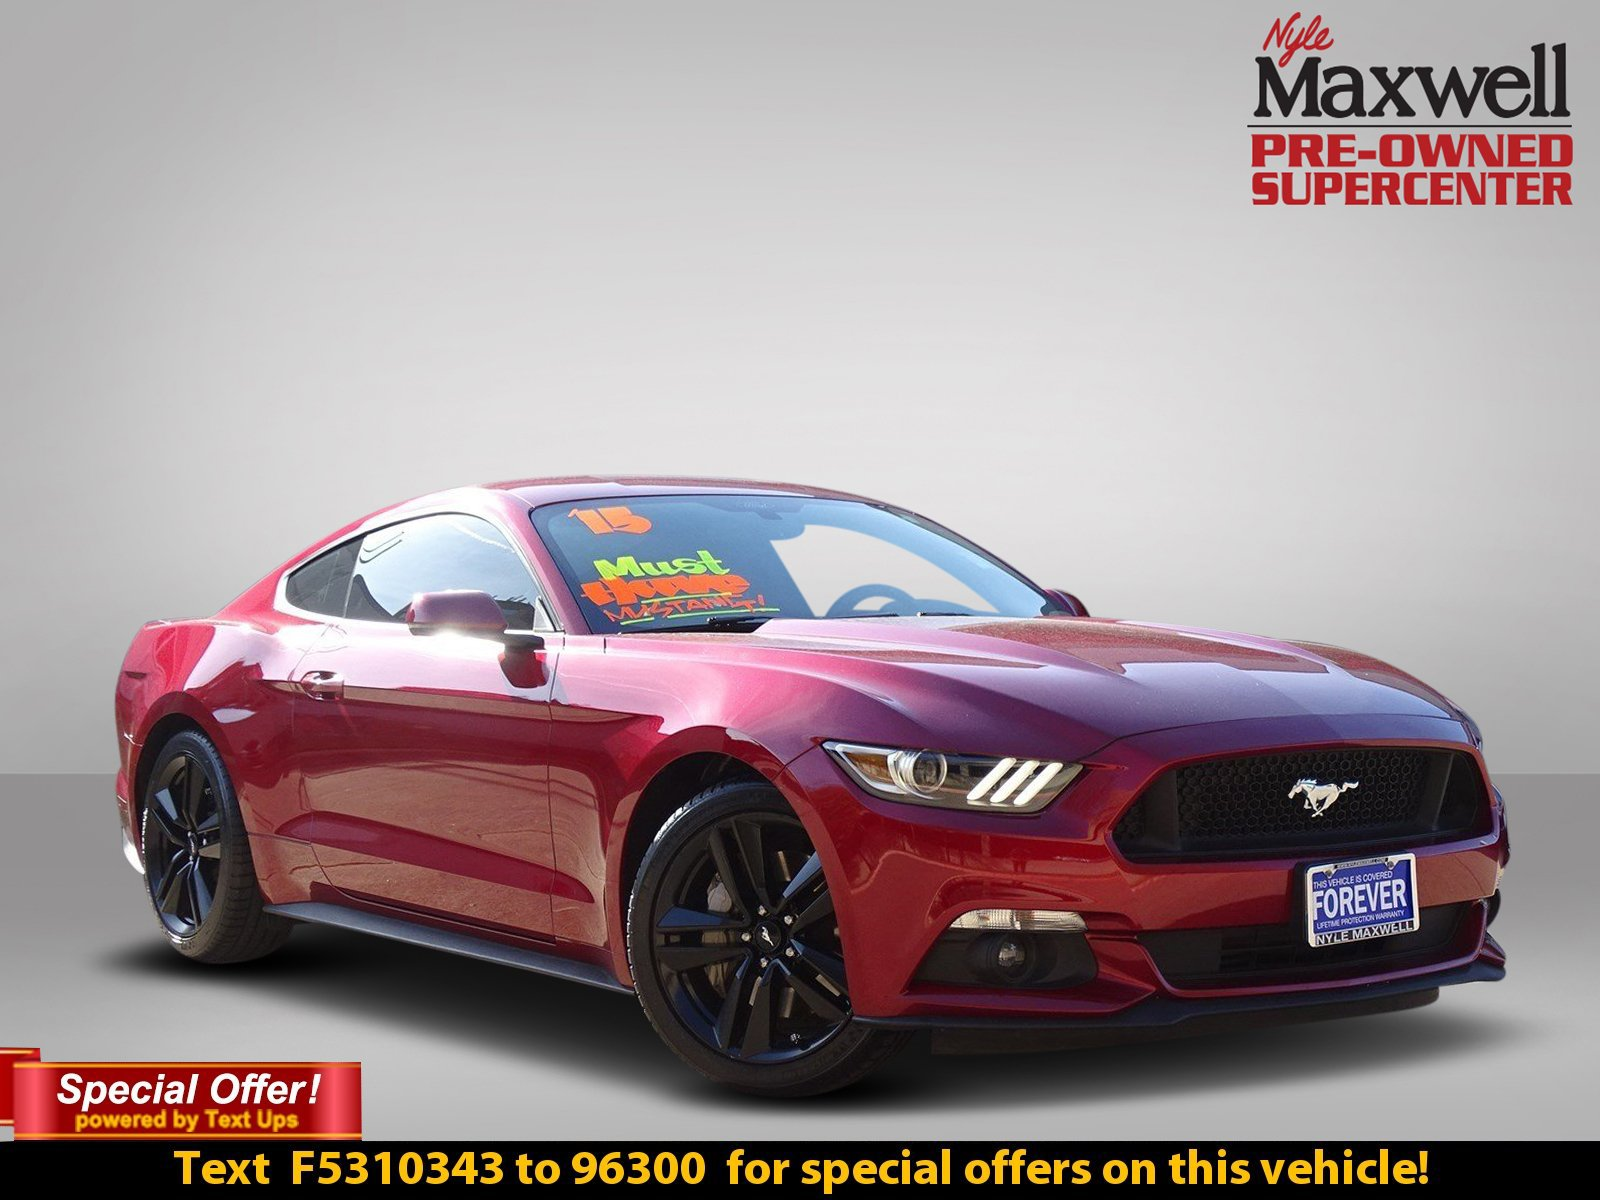 Pre Owned 2015 Ford Mustang EcoBoost 2dr Car in Austin F